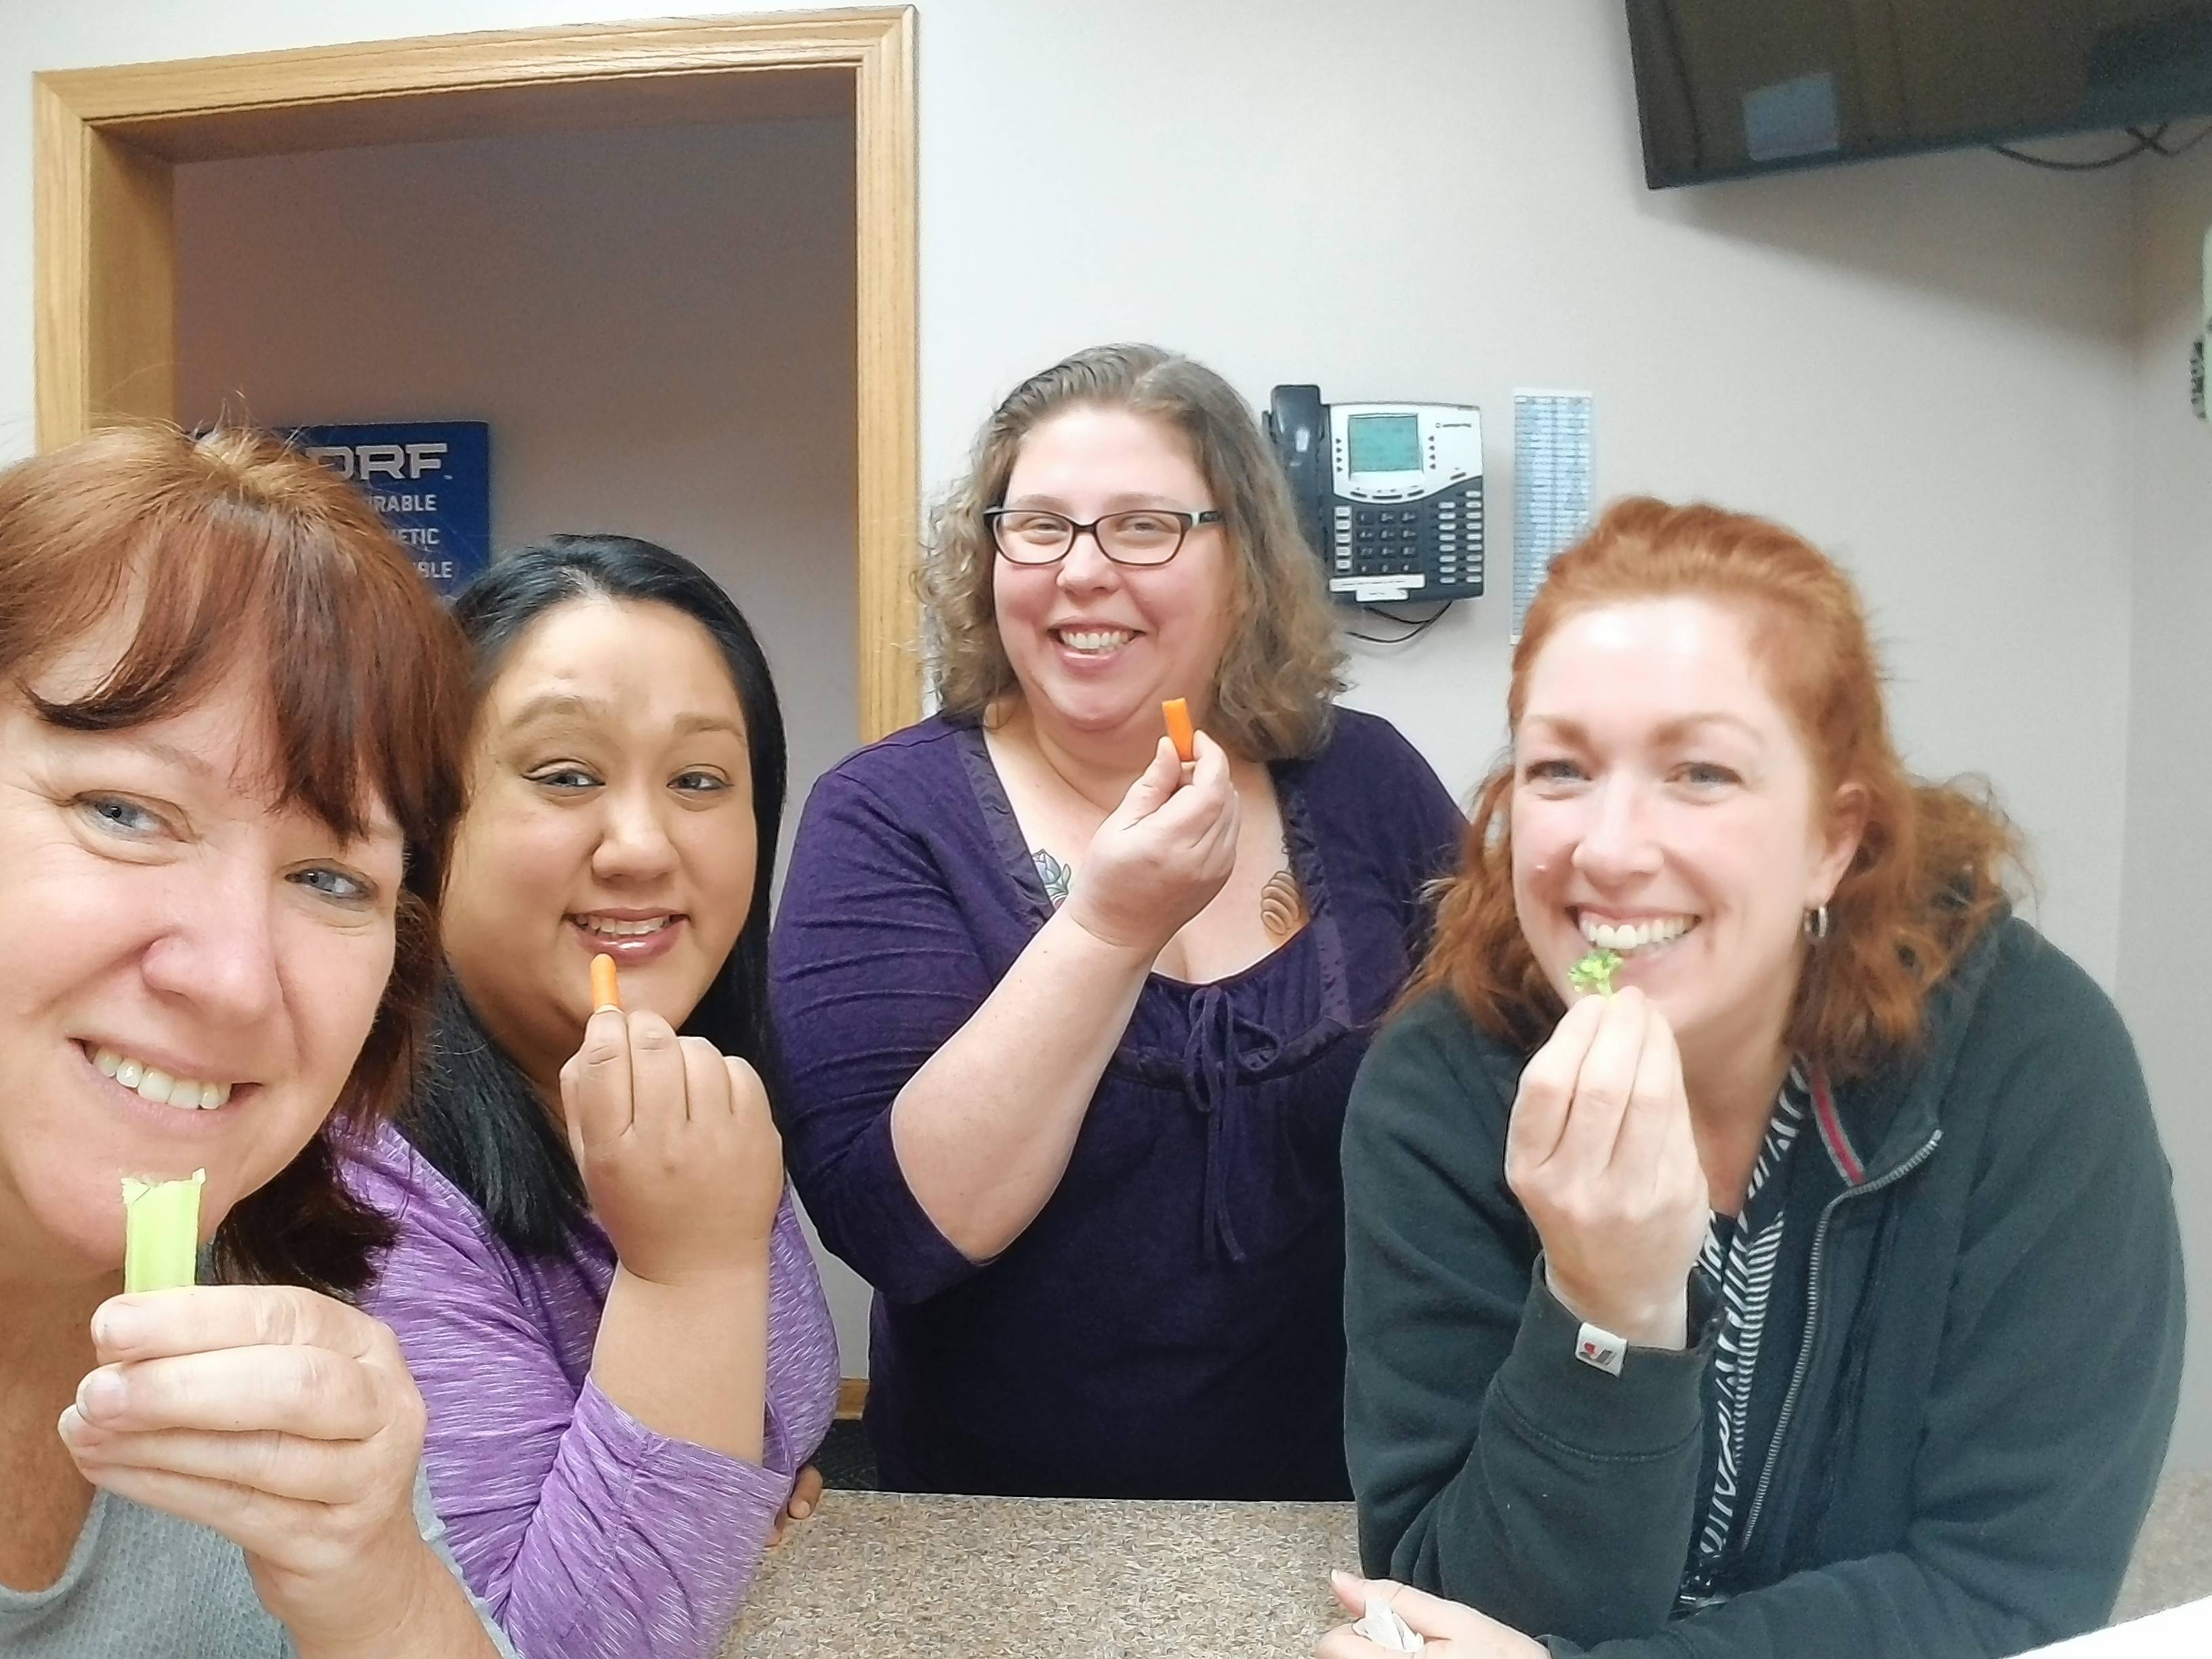 DRF Property Solutions' Healthy Heroes avoided sweets and enjoys some tasty veggies. From left to right: Joyce Gillette, Carolyna Castaneda, Ellen Ramirez, and Kelli Aiardo.